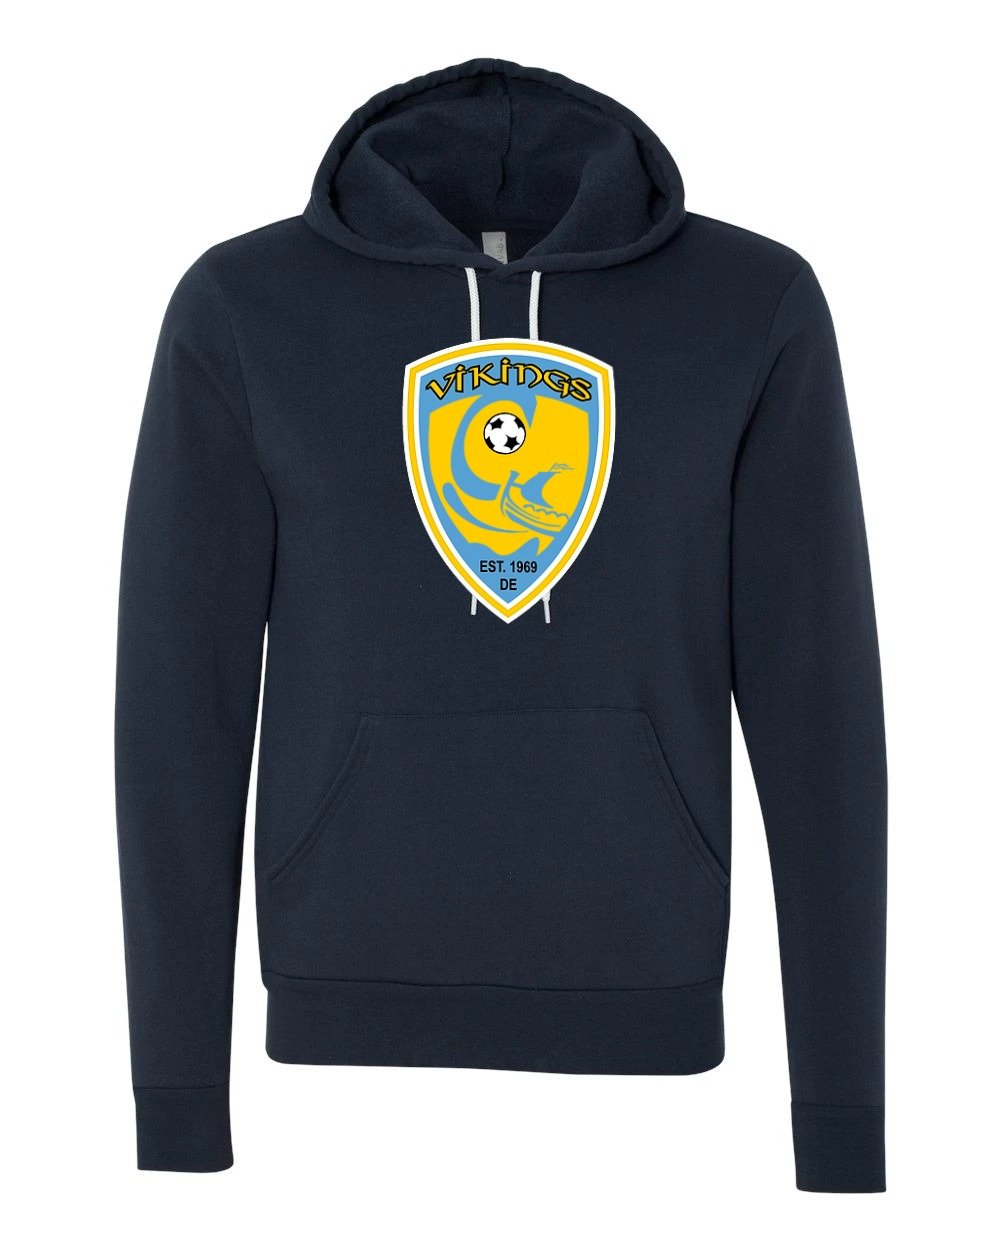 Bella+Canvas - Unisex Pullover Hooded Sweatshirt